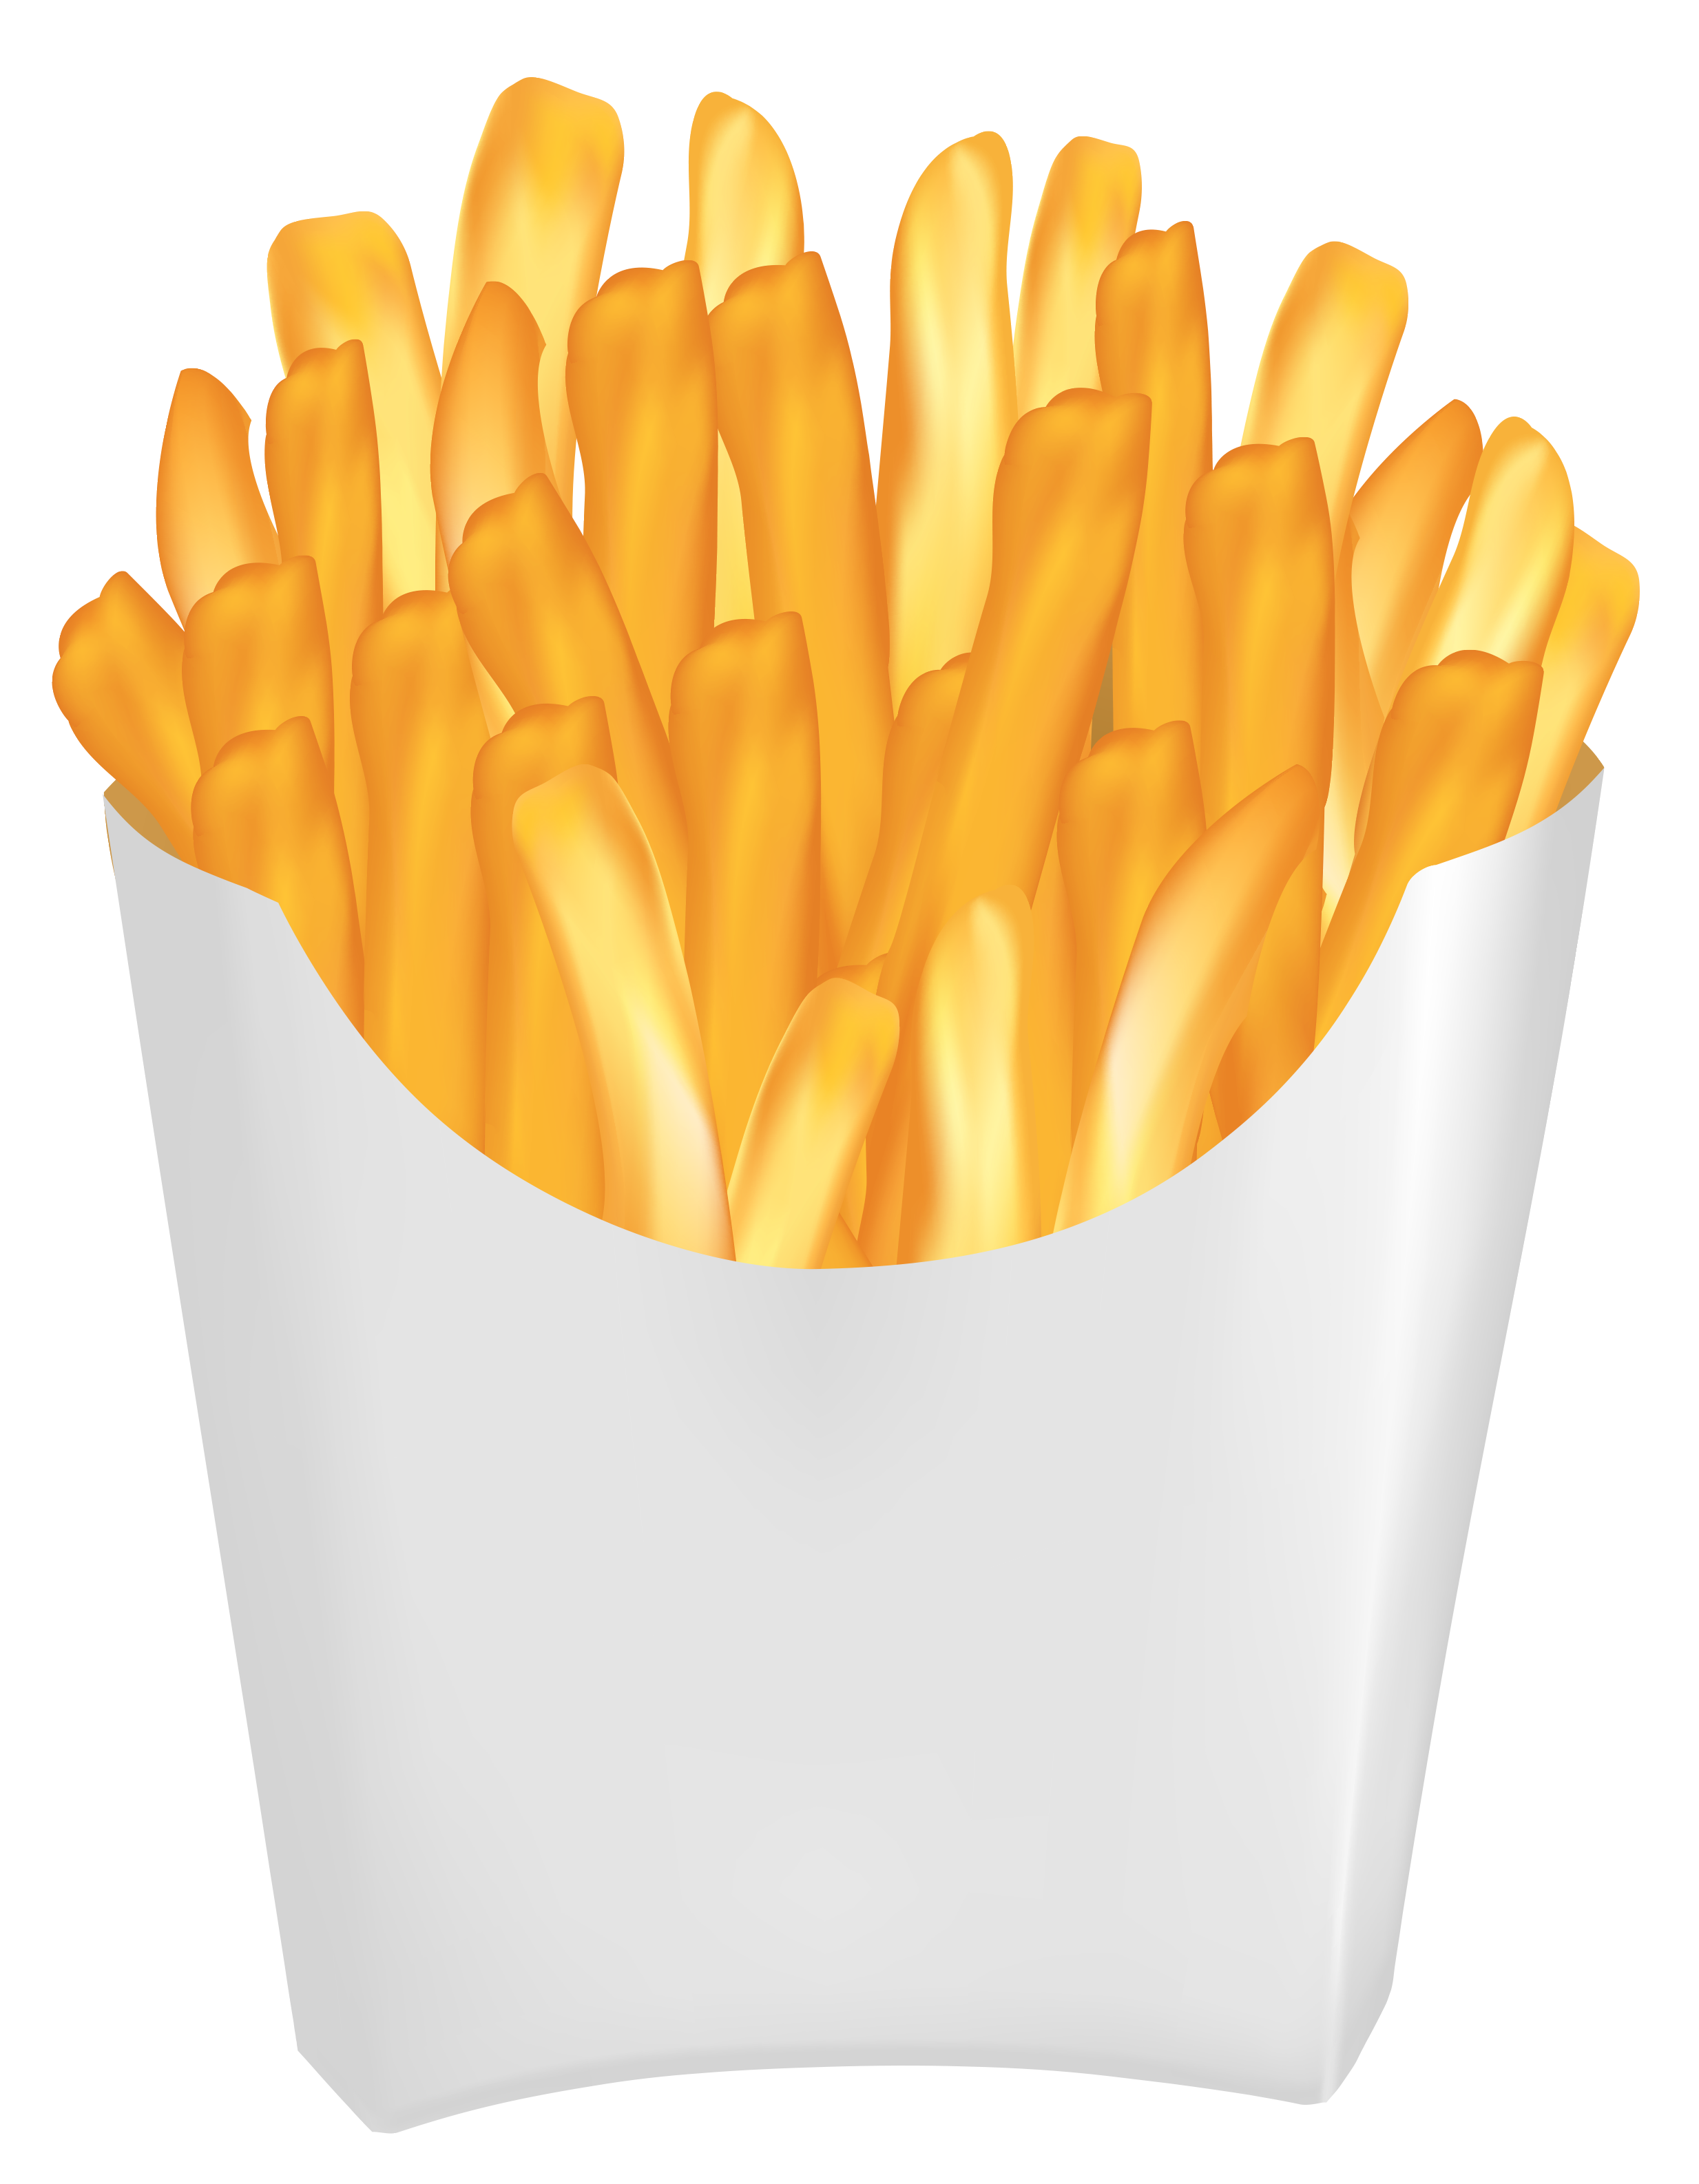 Hamburger french fast food. Fries clipart frenc